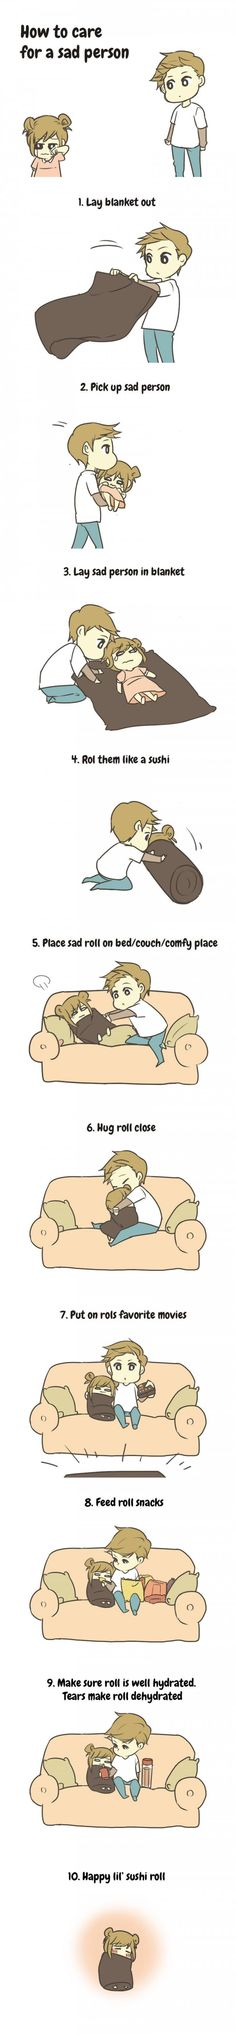 How to care for a sad person ♥